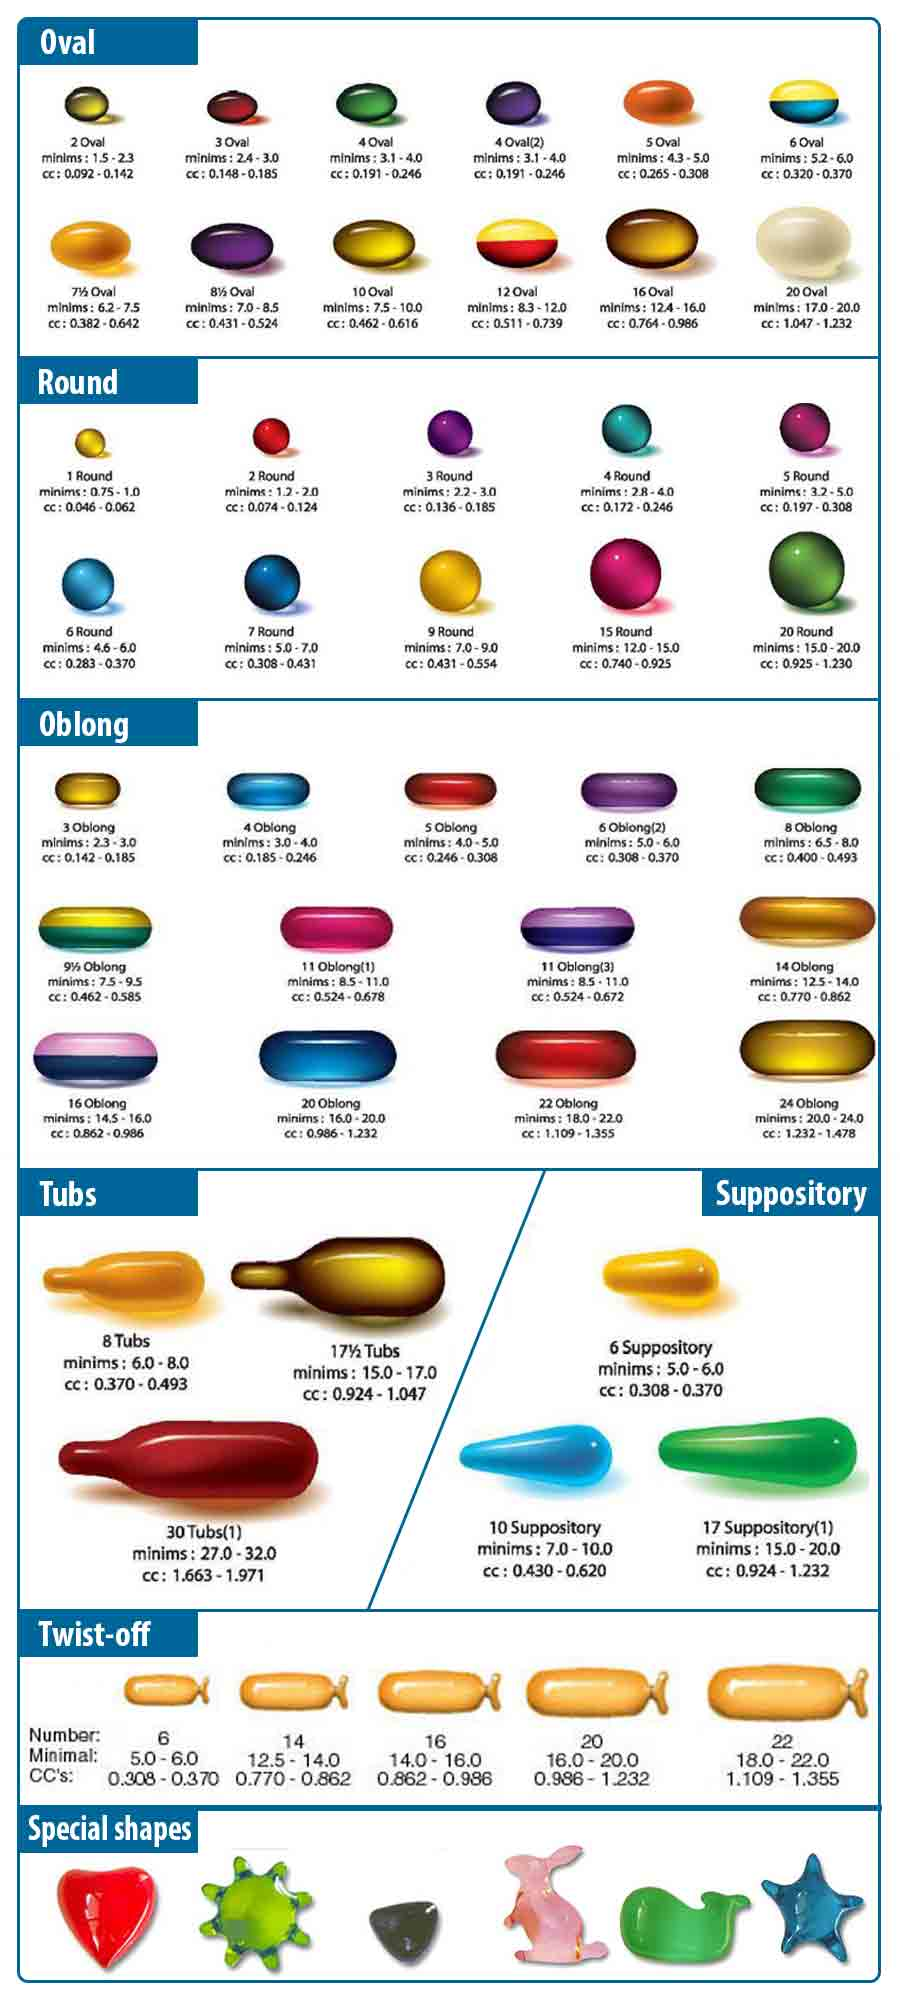 Schematic diagrams illustrating different shapes of soft gelatin capsules